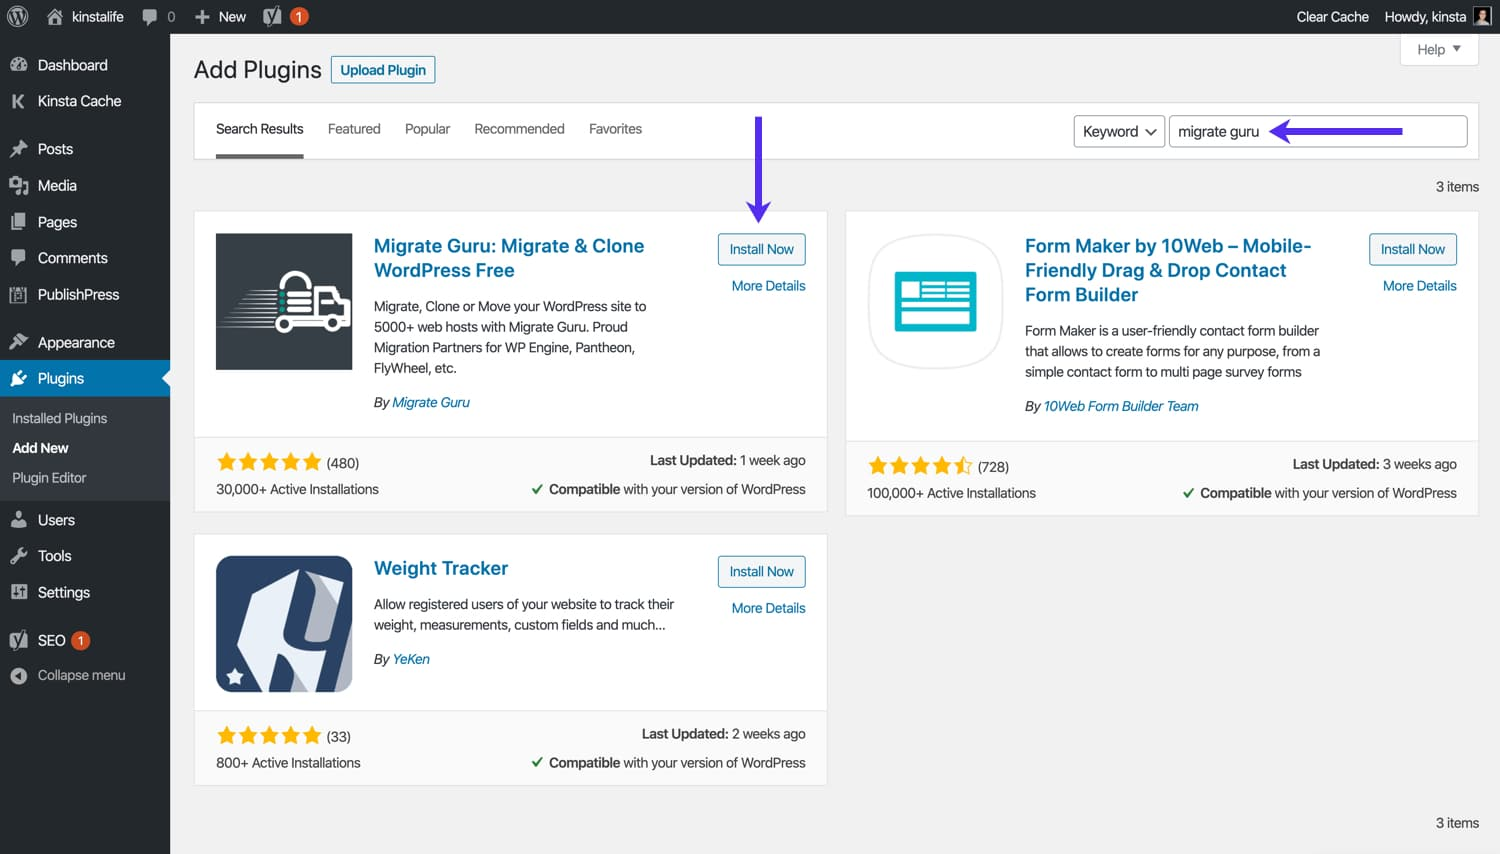 Once you've located Migrate Guru go ahead and install the plugin.